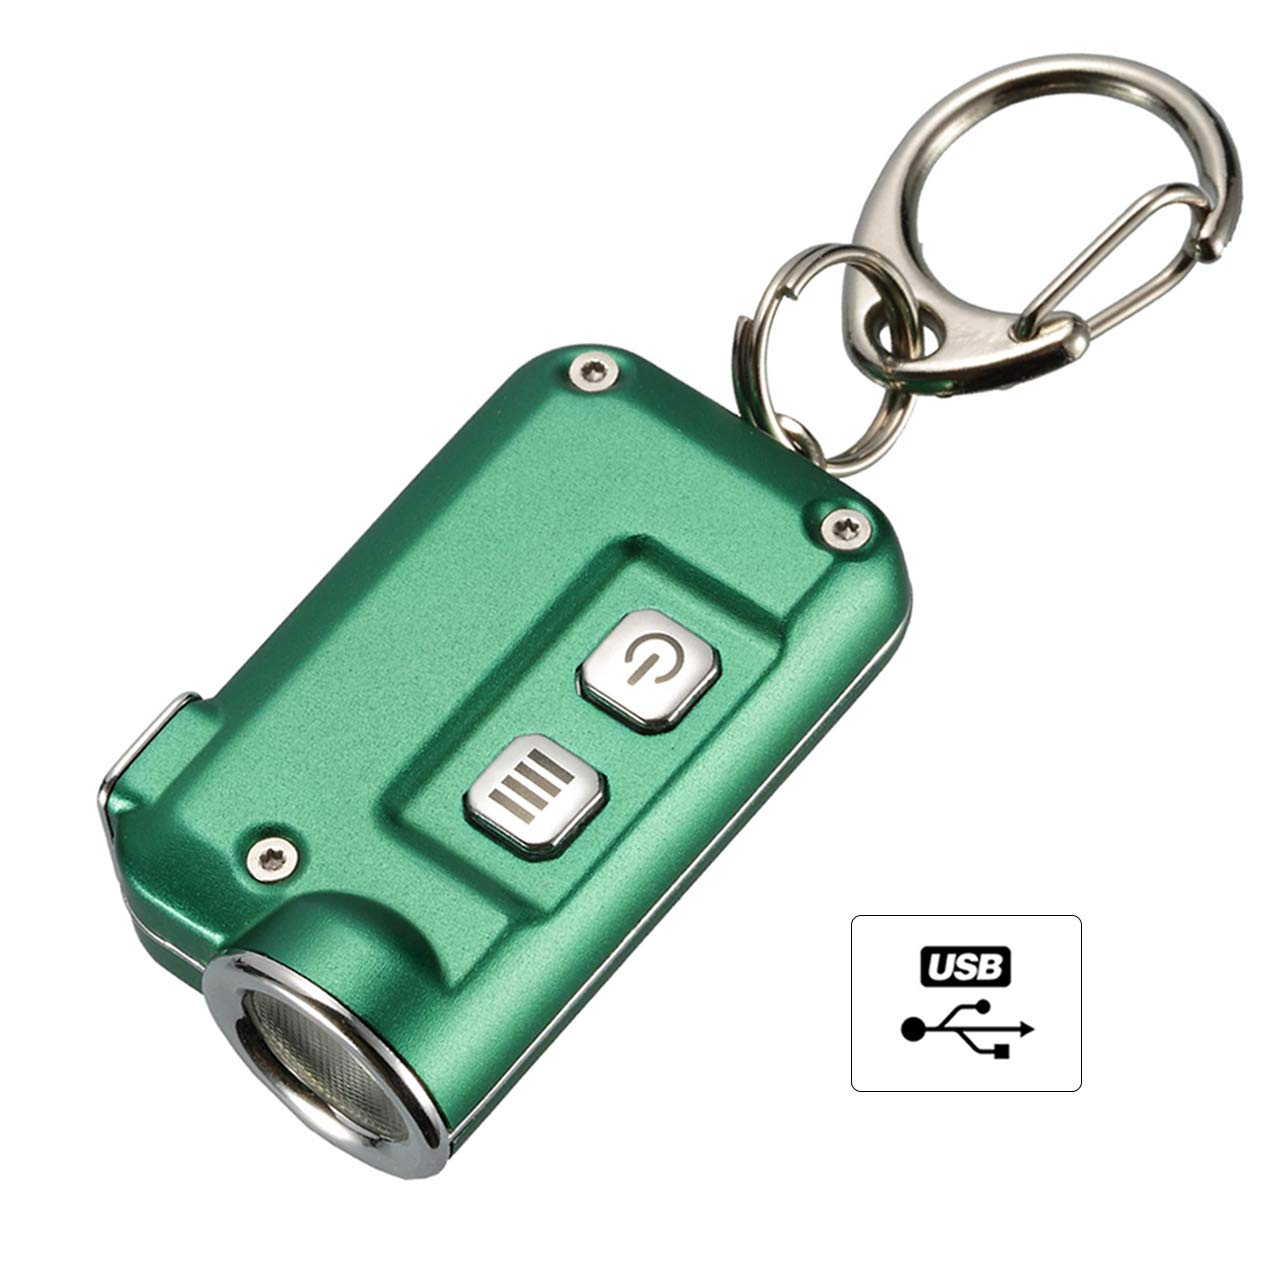 Nitecore TINI Keyring Torch - Super Bright USB Rechargeable - Small Torch 380Lm Runtime up to 60 Hours 7 Colours